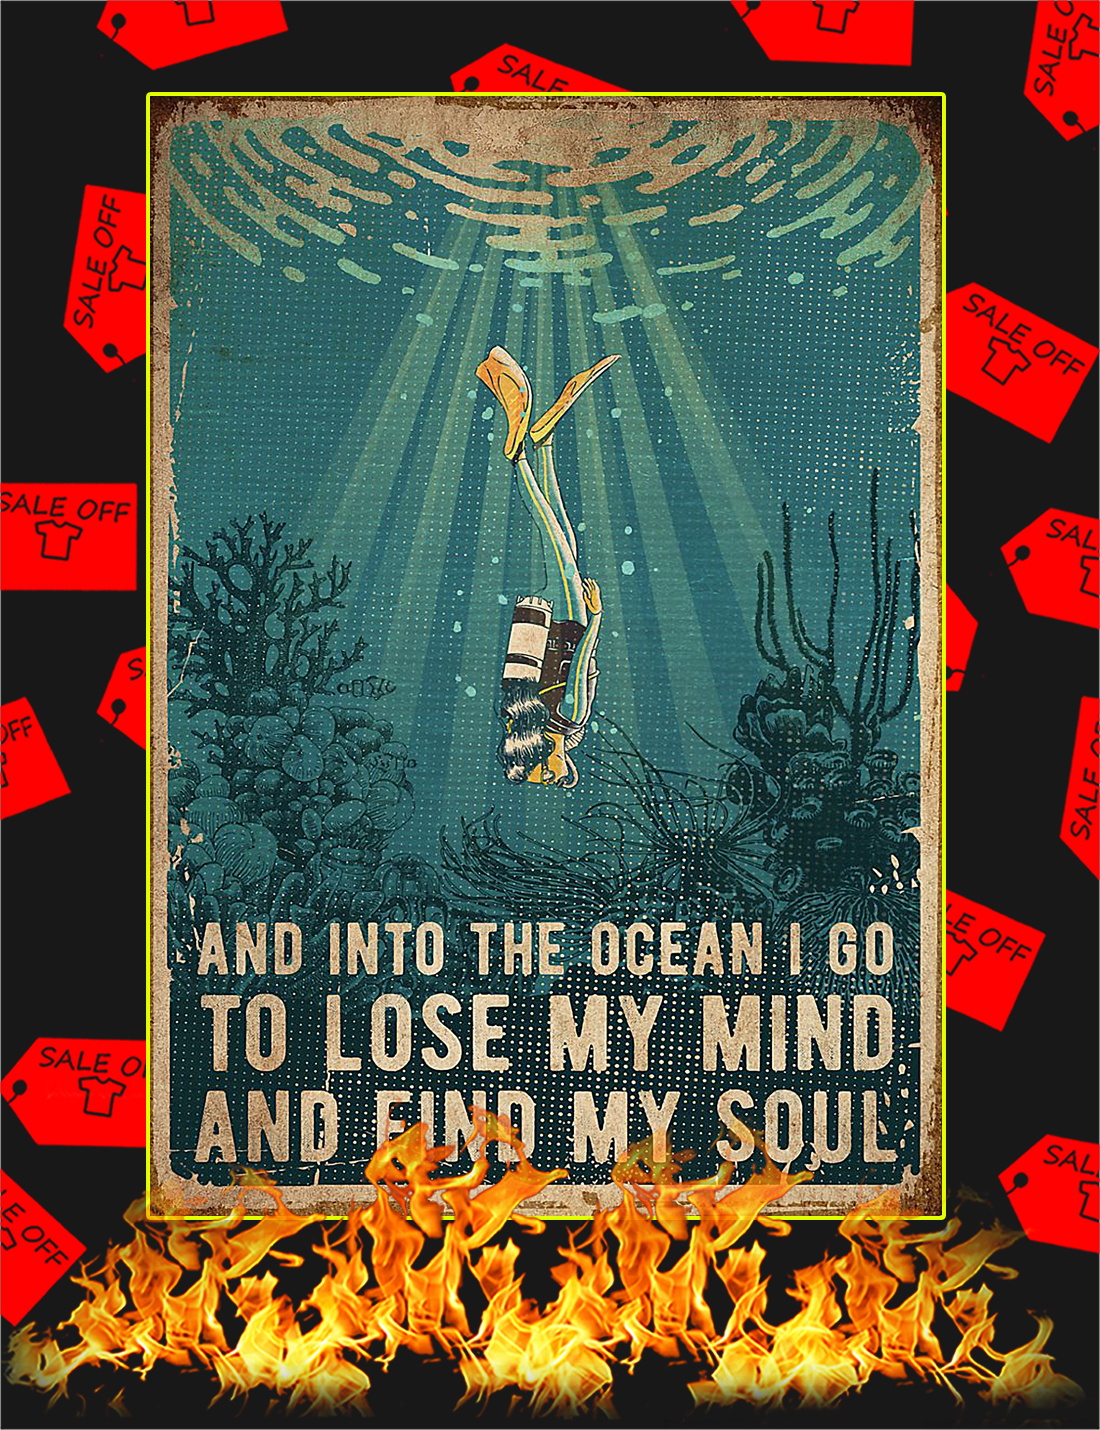 Scuba And into the ocean poster